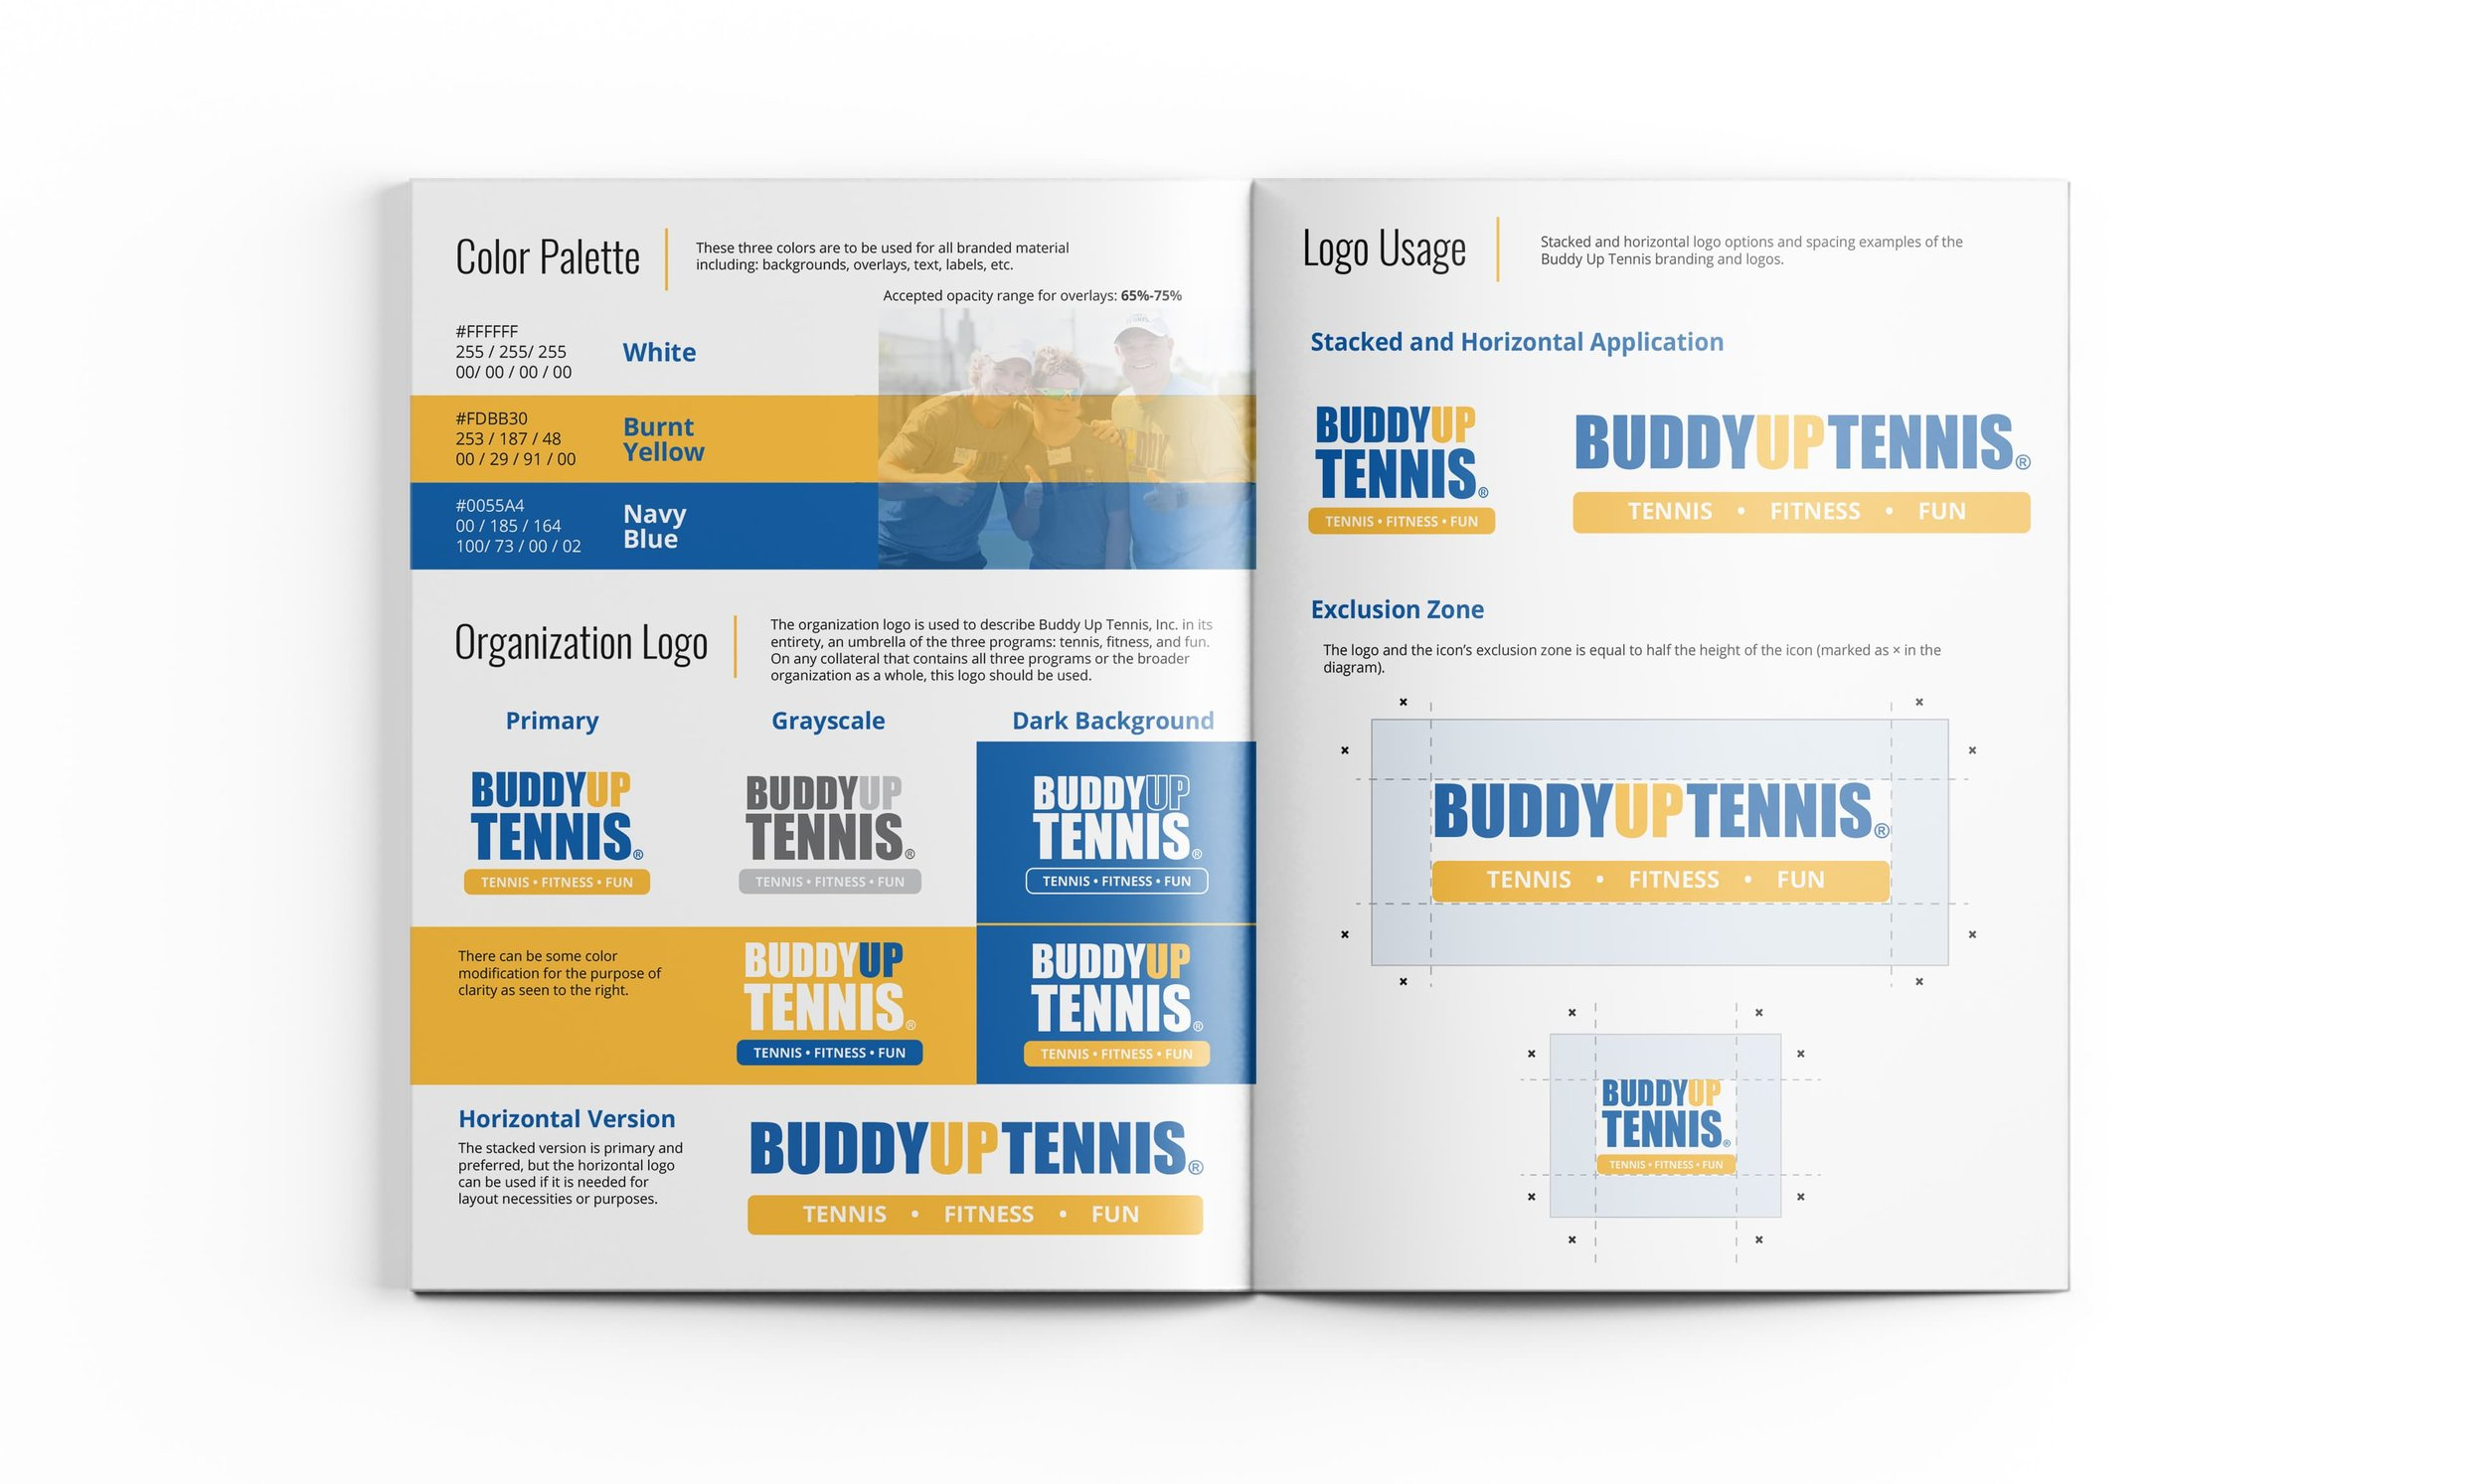 Buddy Up Tennis Brand Guide Mockup – Inside Logo Pages.jpg